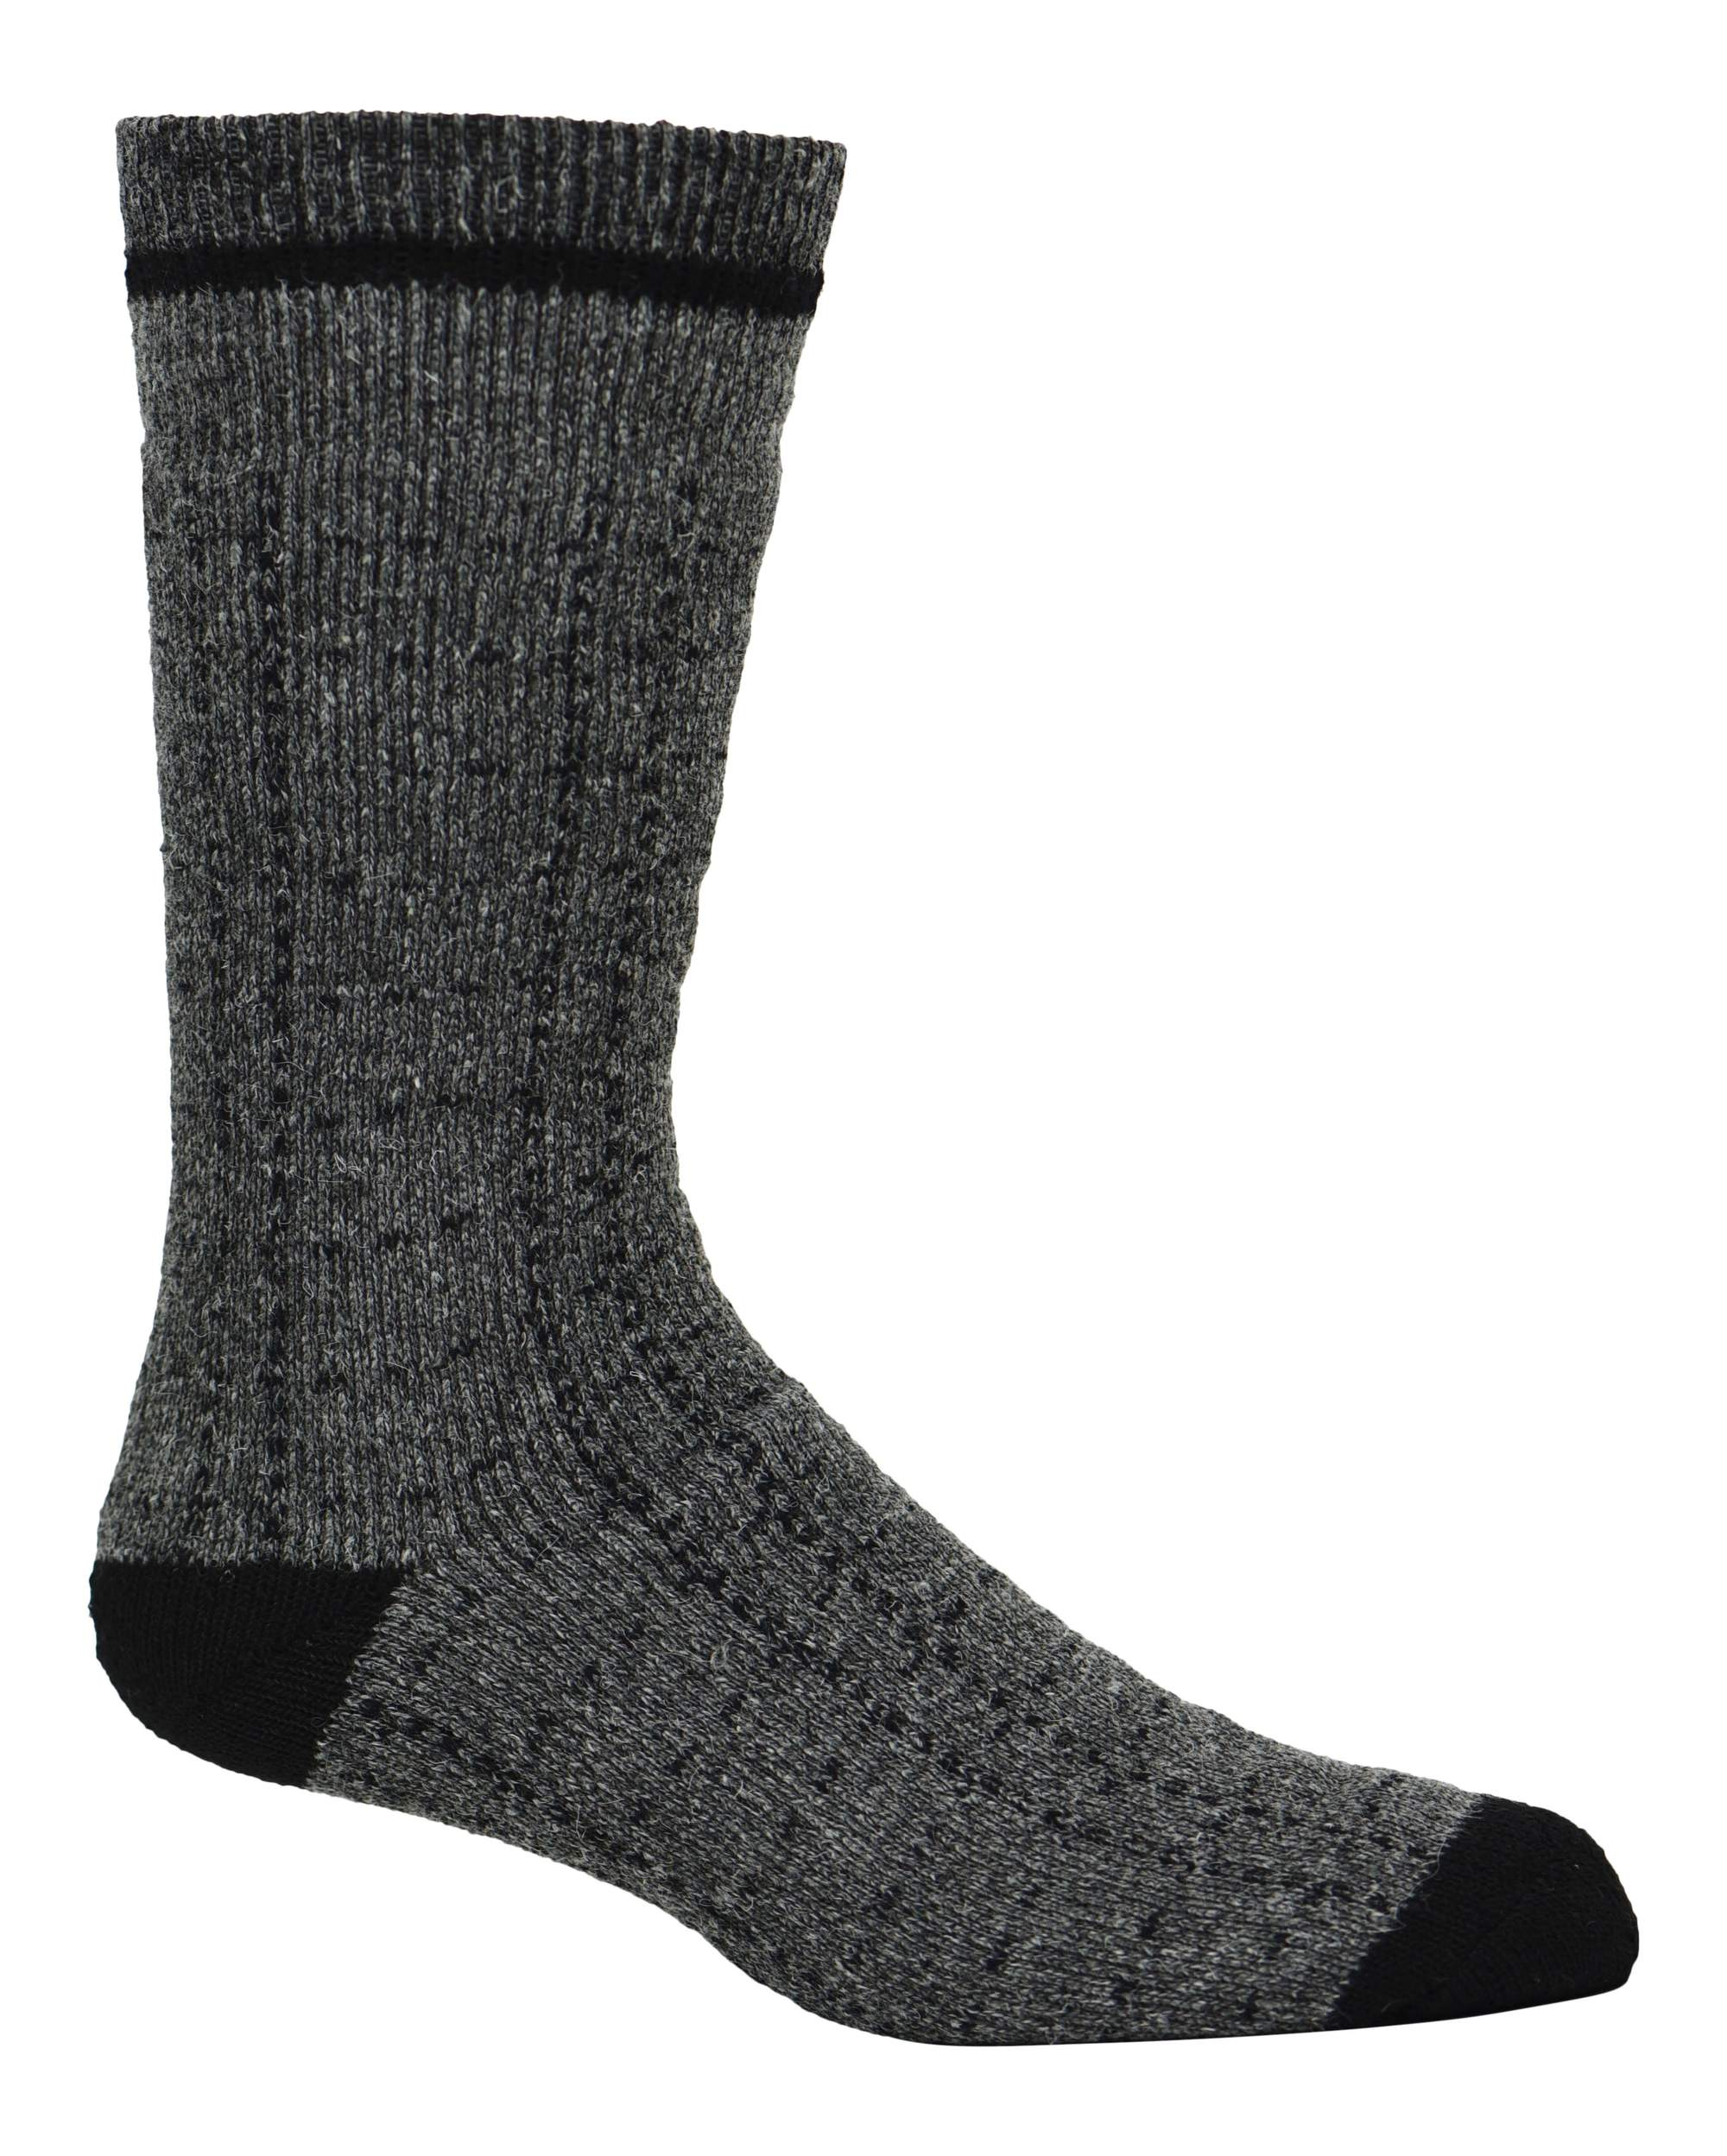 Men's Kodiak Thermal Wool Socks 2-Pack